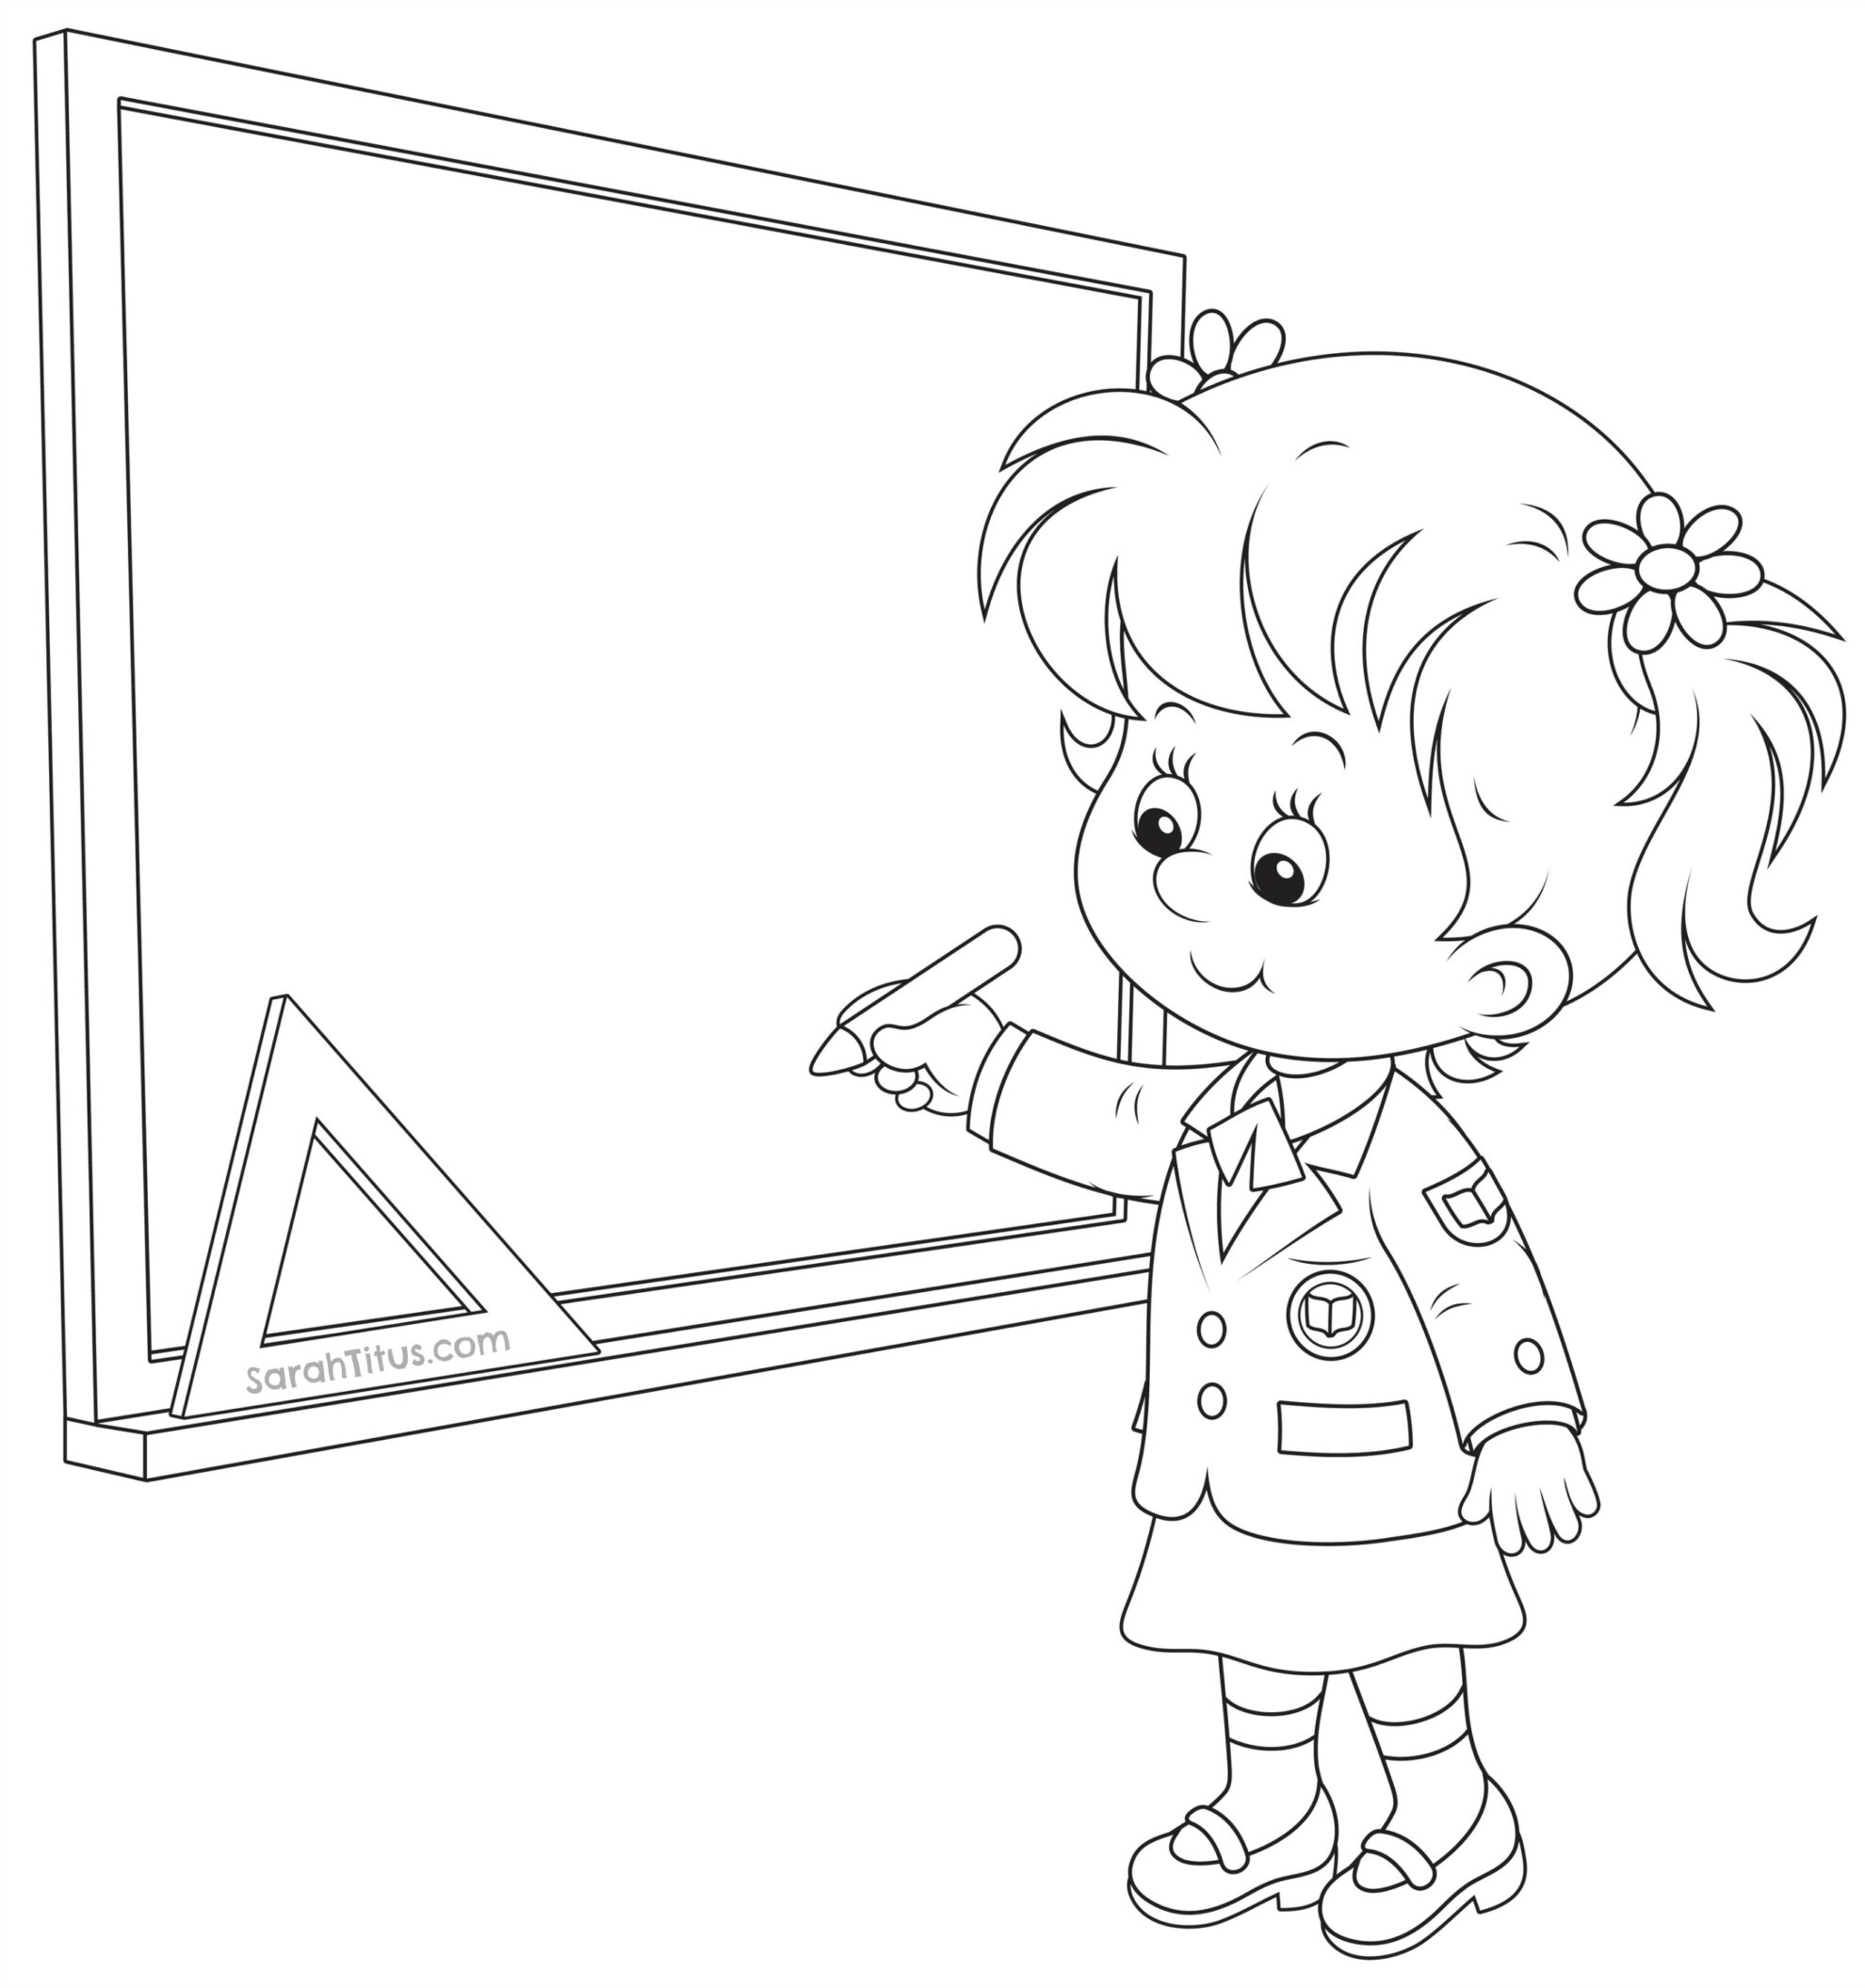 el coloring pages - photo#27